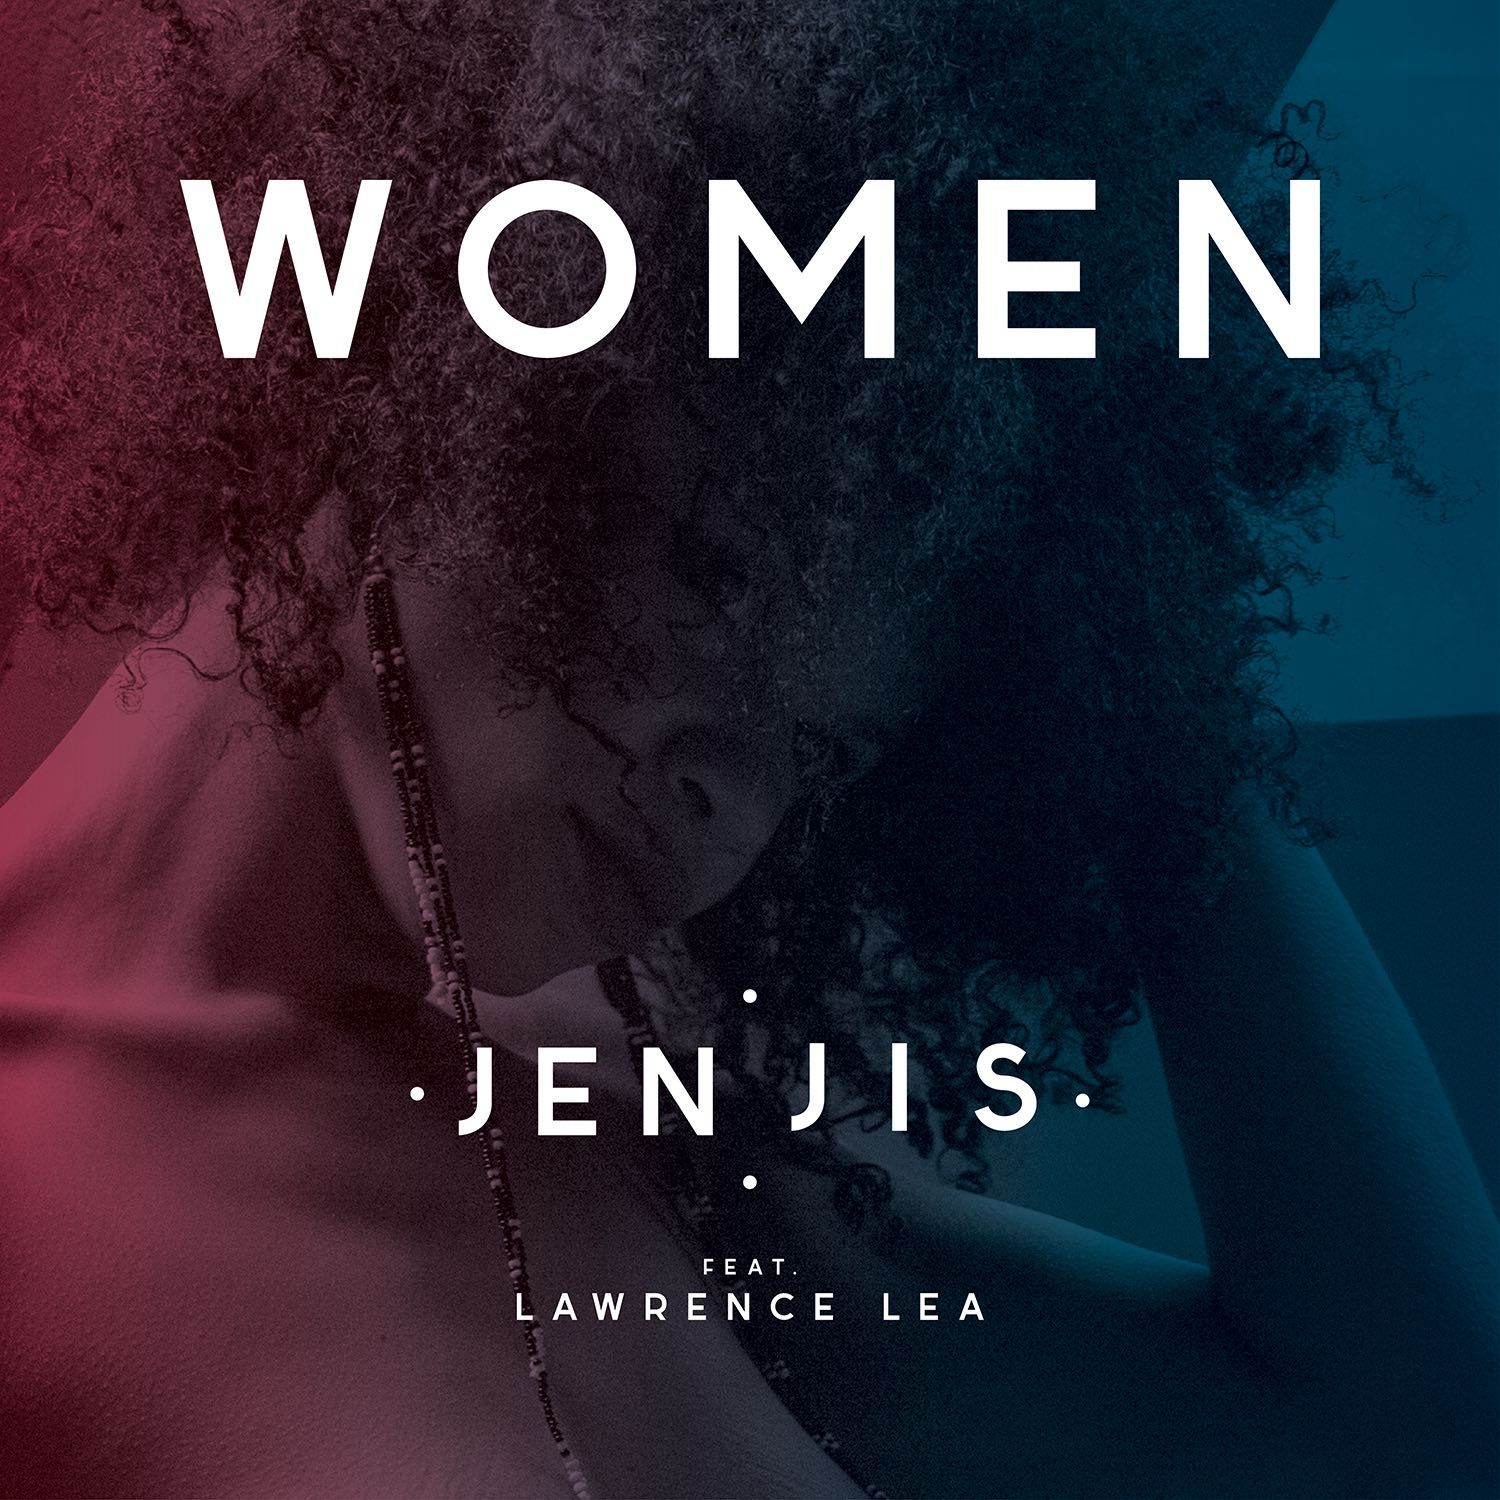 jen_jis_feat._lawrence_lea_-_women_web.jpg